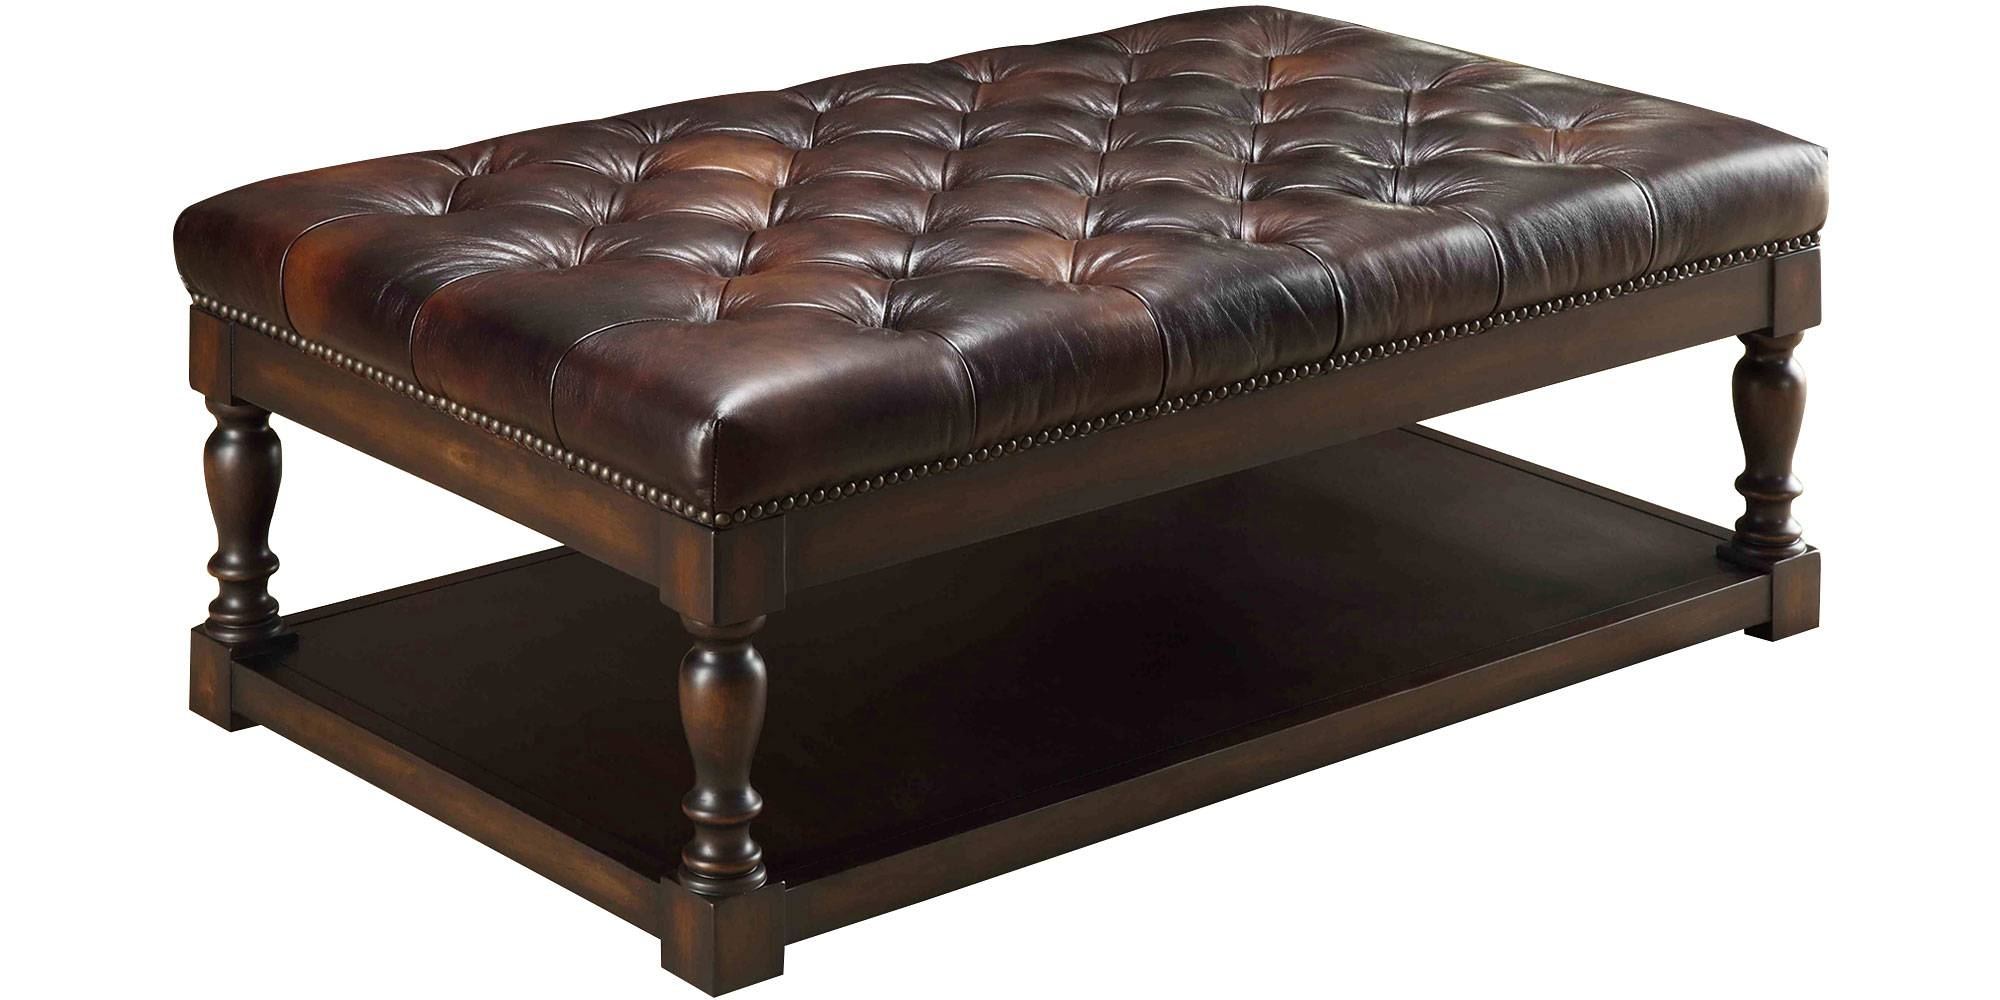 12 the best large coffee table with storage coffee table appealing large ottoman coffee table design ideas regarding large coffee table with storage geotapseo Images